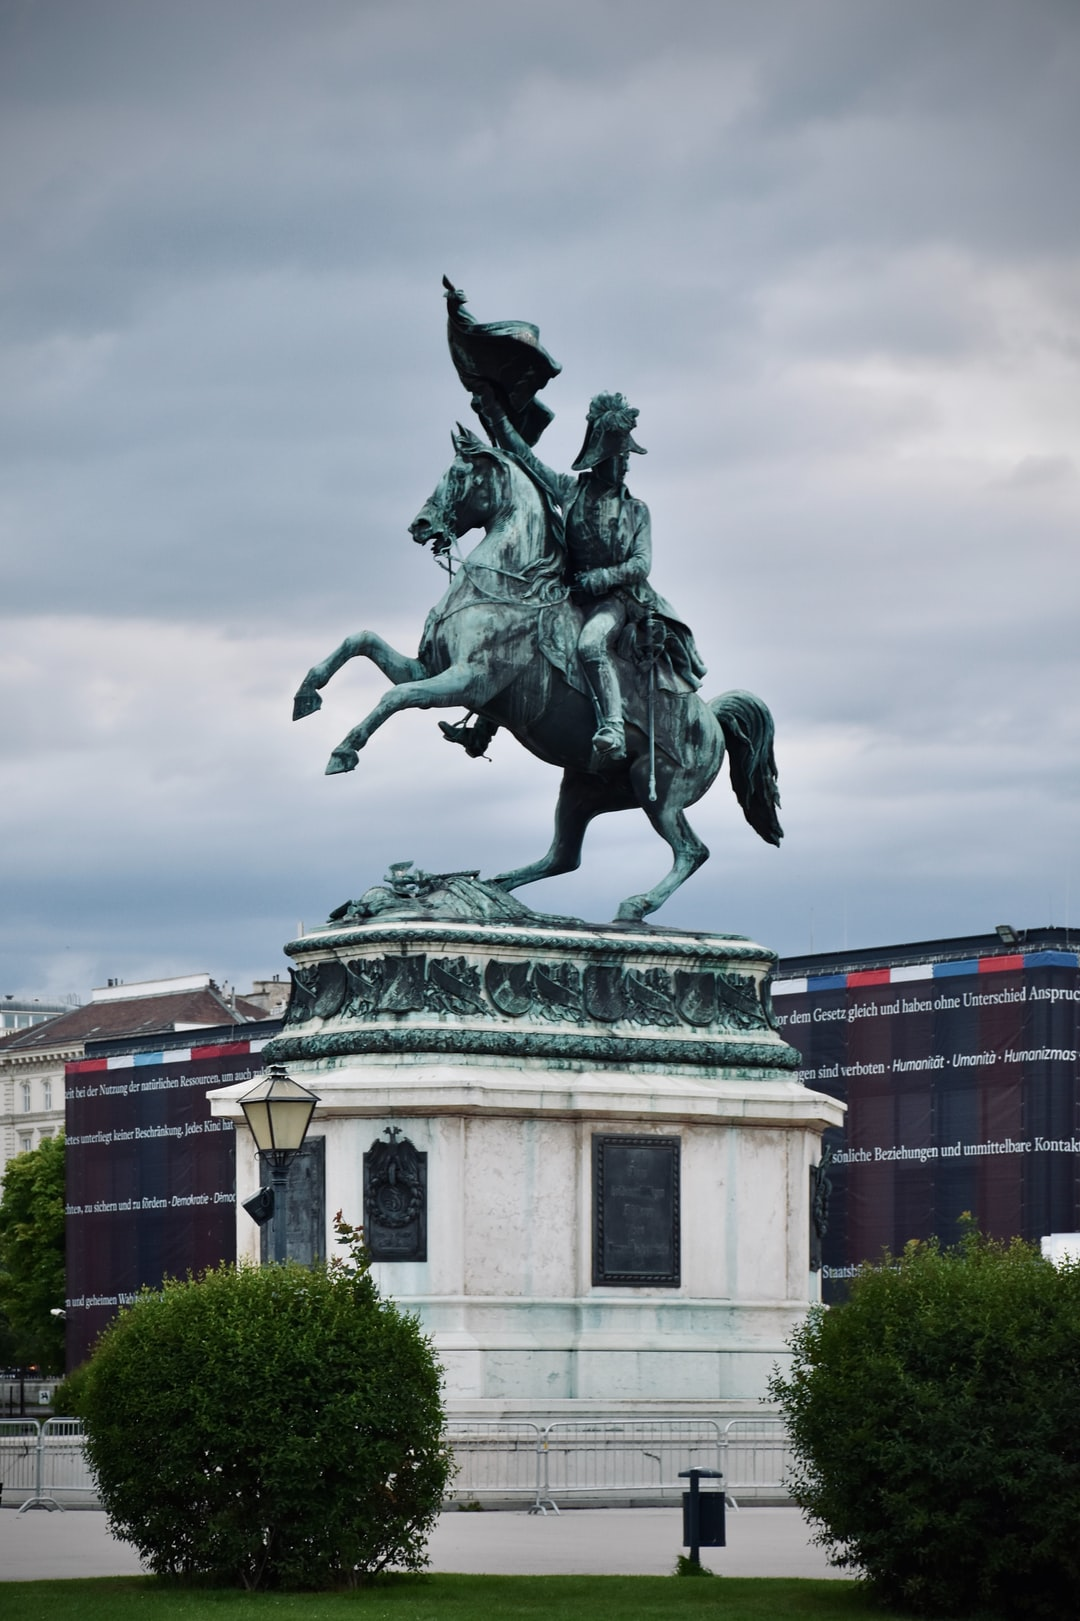 Stormy rider on a summer evening: The equestrian statue depicting the Austrian archduke Carl Ludwig von Österreich (1771 - 1847) constructed by architect Anton Dominik Fernkorn in 1860 on the Vienna Heldenplatz.